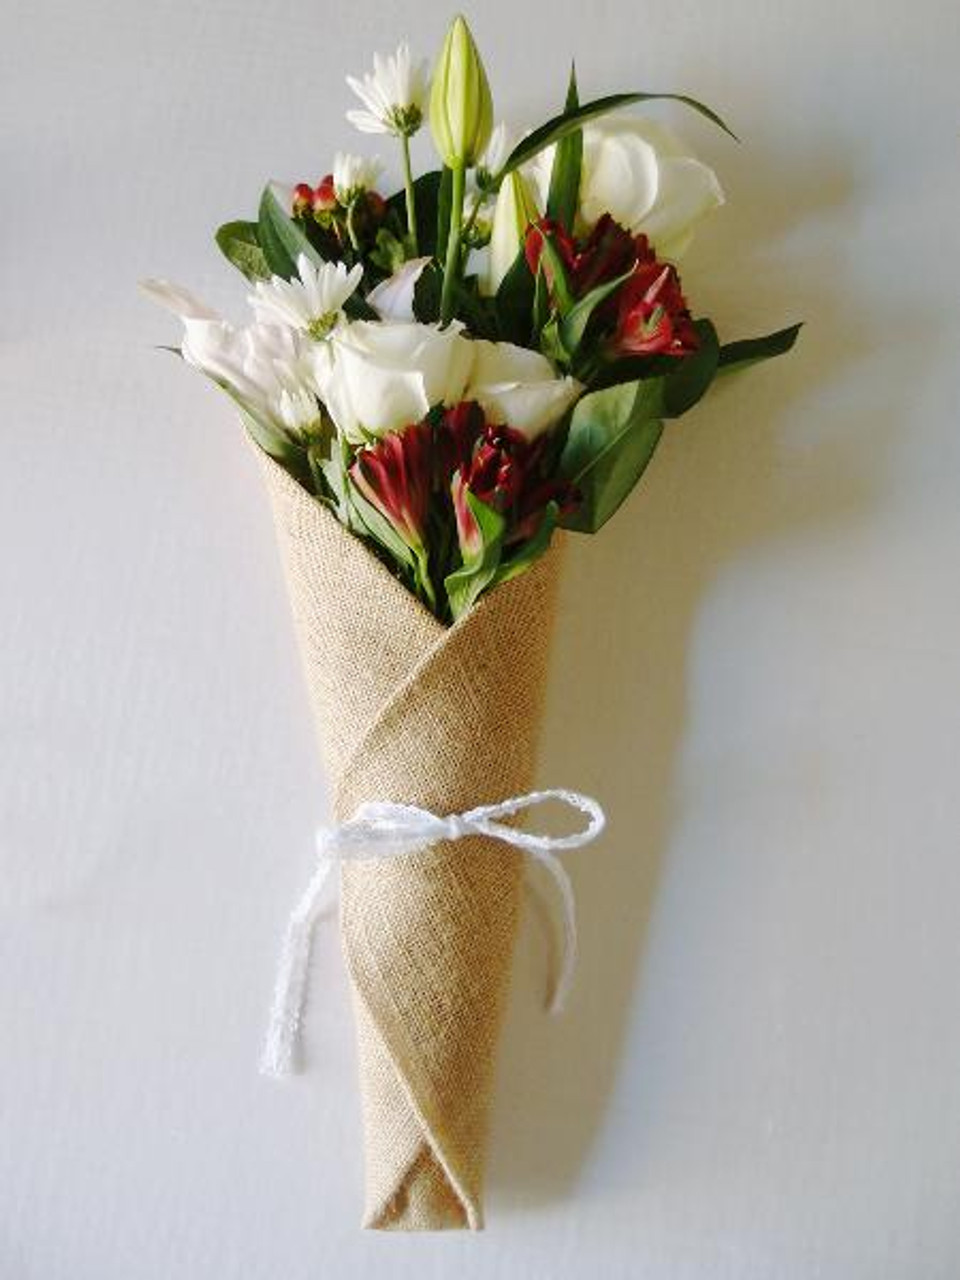 Burlap Floral Wrap with Pocket 14 x 20.75 inches, B992-21   Packaging Decor